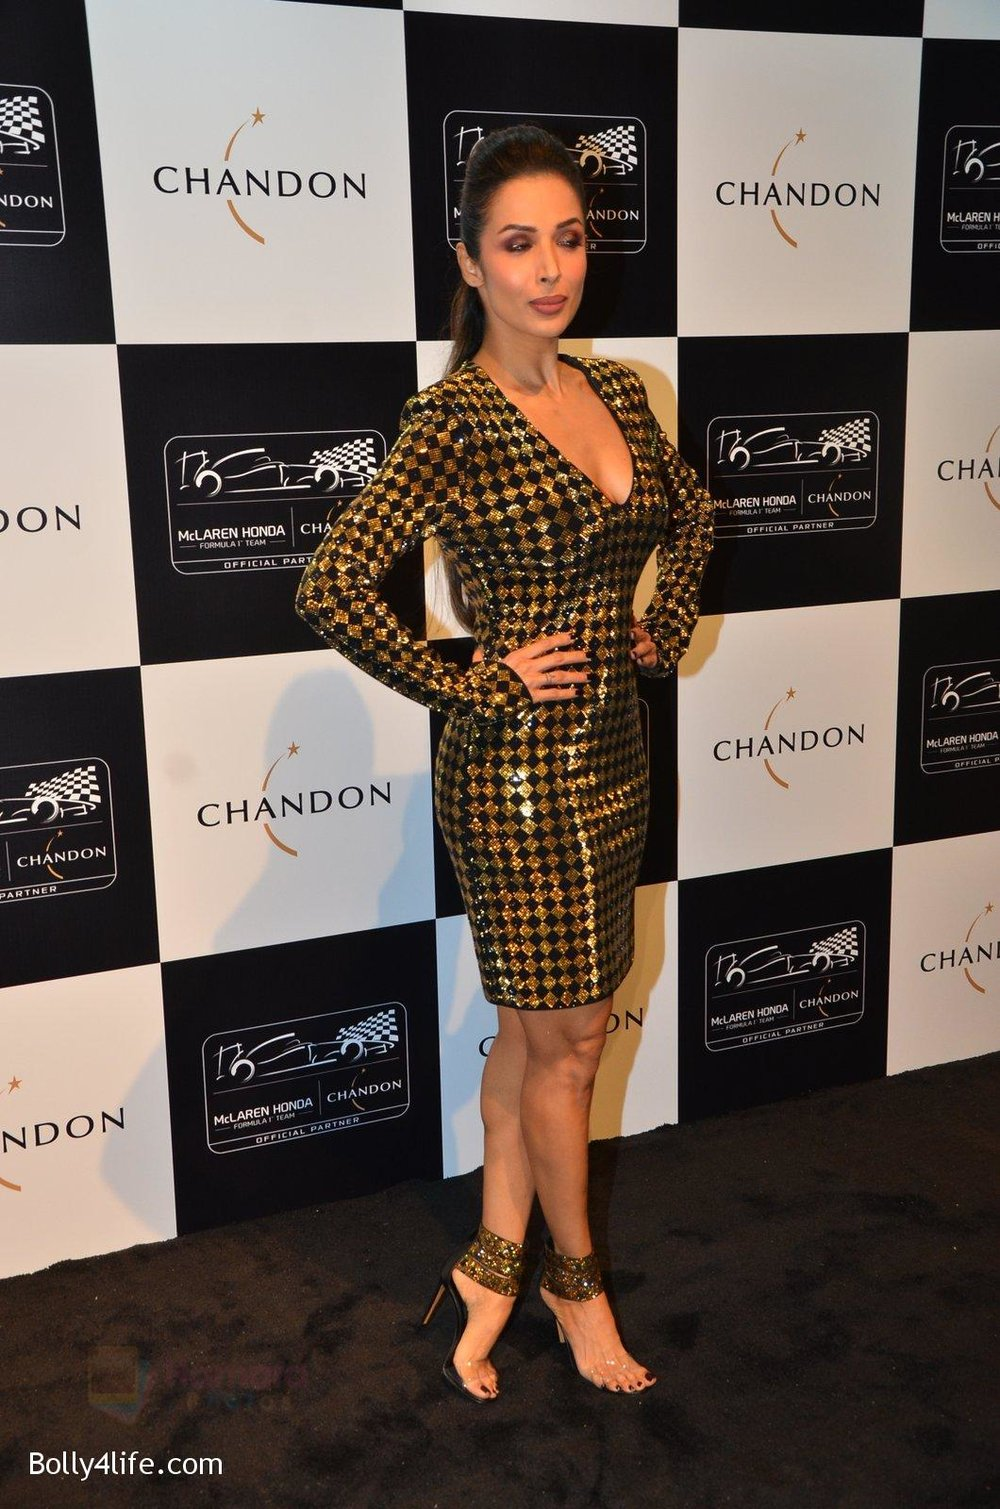 Malaika-Arora-Khan-at-the-unveiling-Chandon-X-McLaren-Honda-installation-in-Mumbai-on-9th-Sept-2016-31.jpg